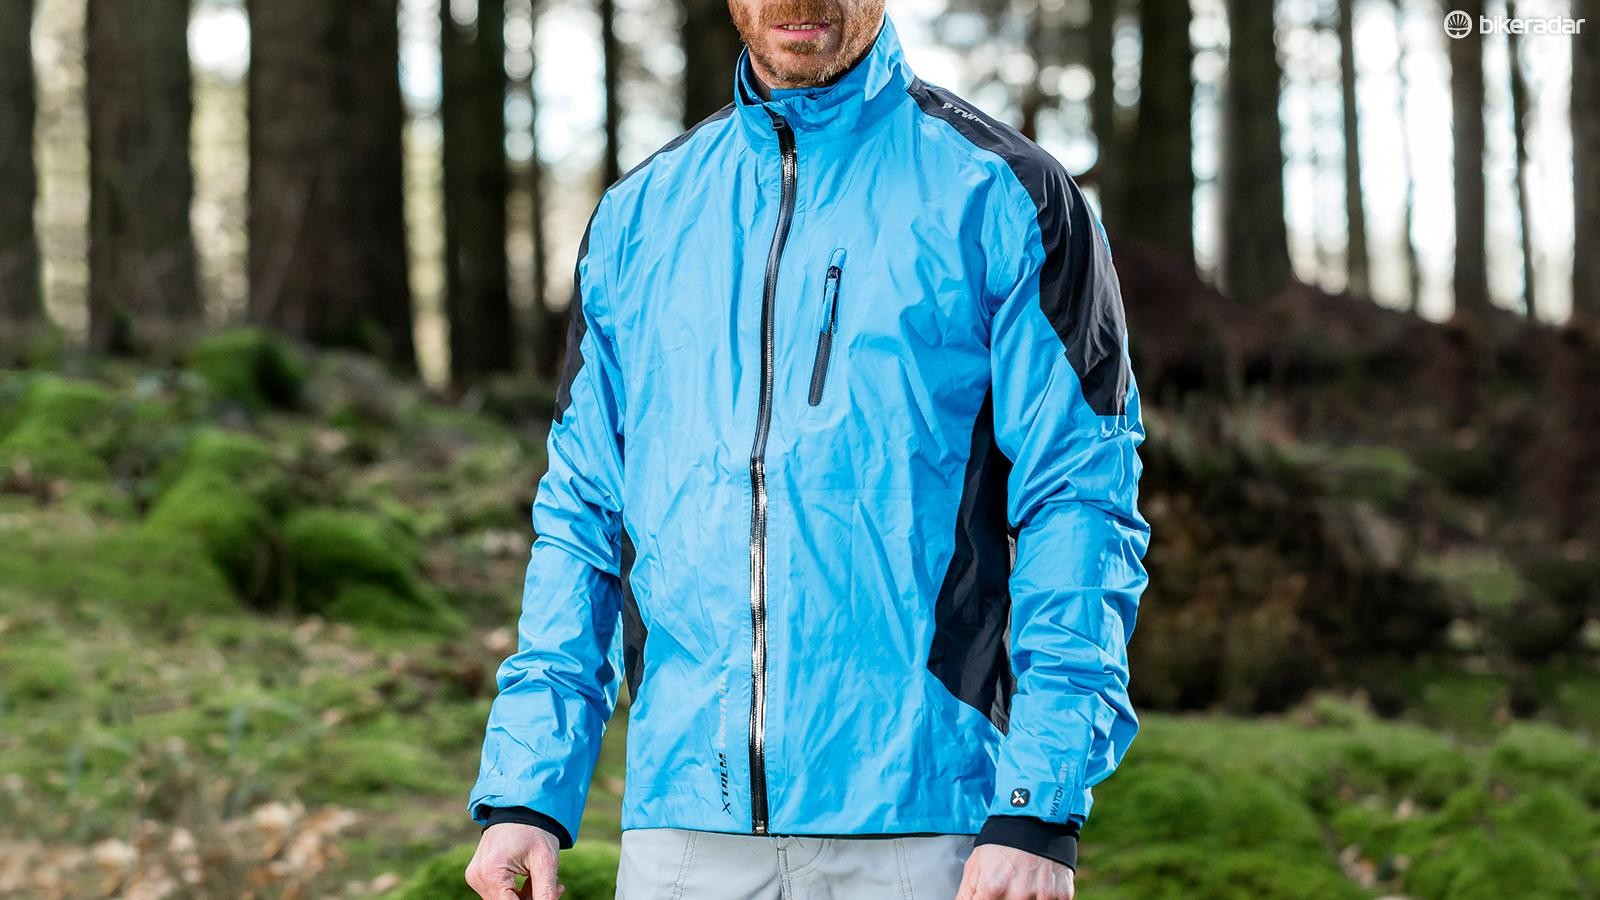 B'Twin's 700 Membrane jacket is another superb value bit of kit from retailer Decathlon